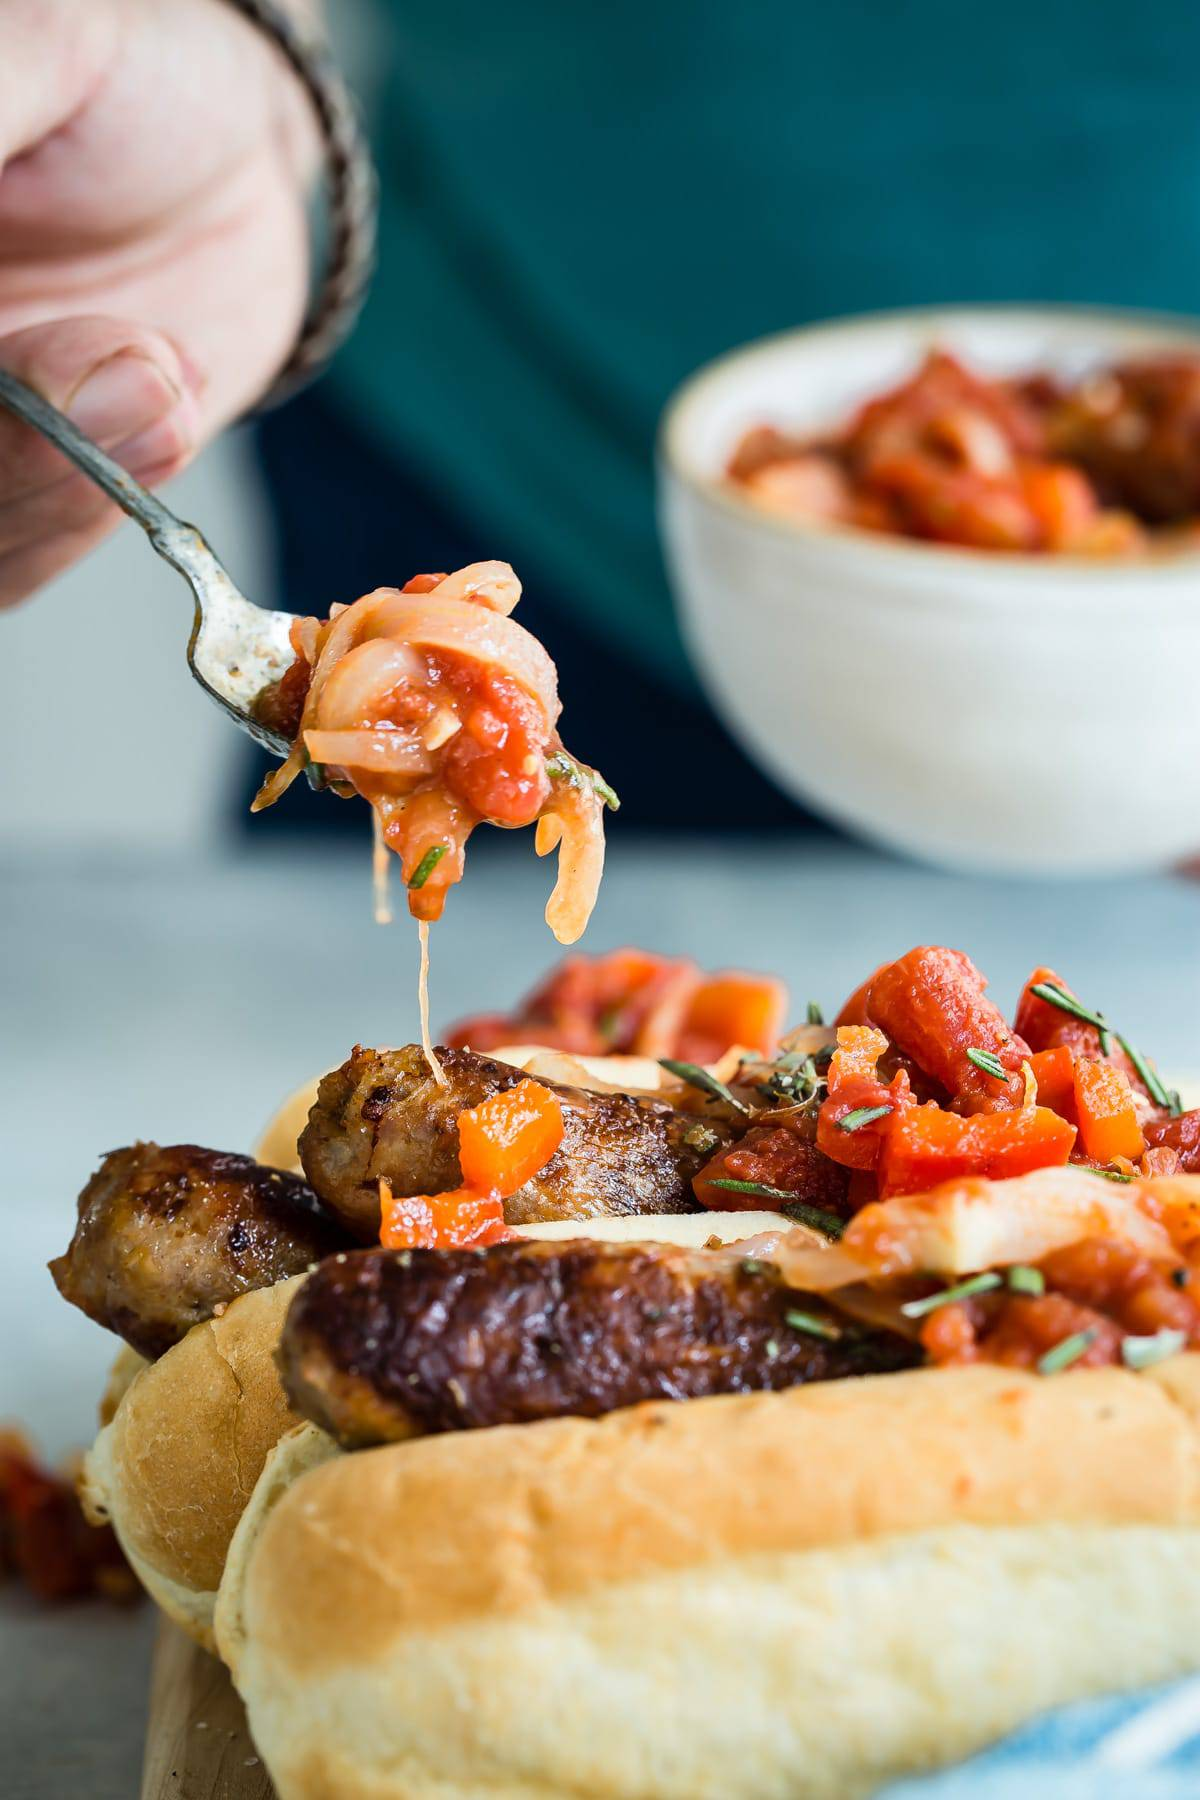 This red pepper and chili relish is a great topping for bratwurst.